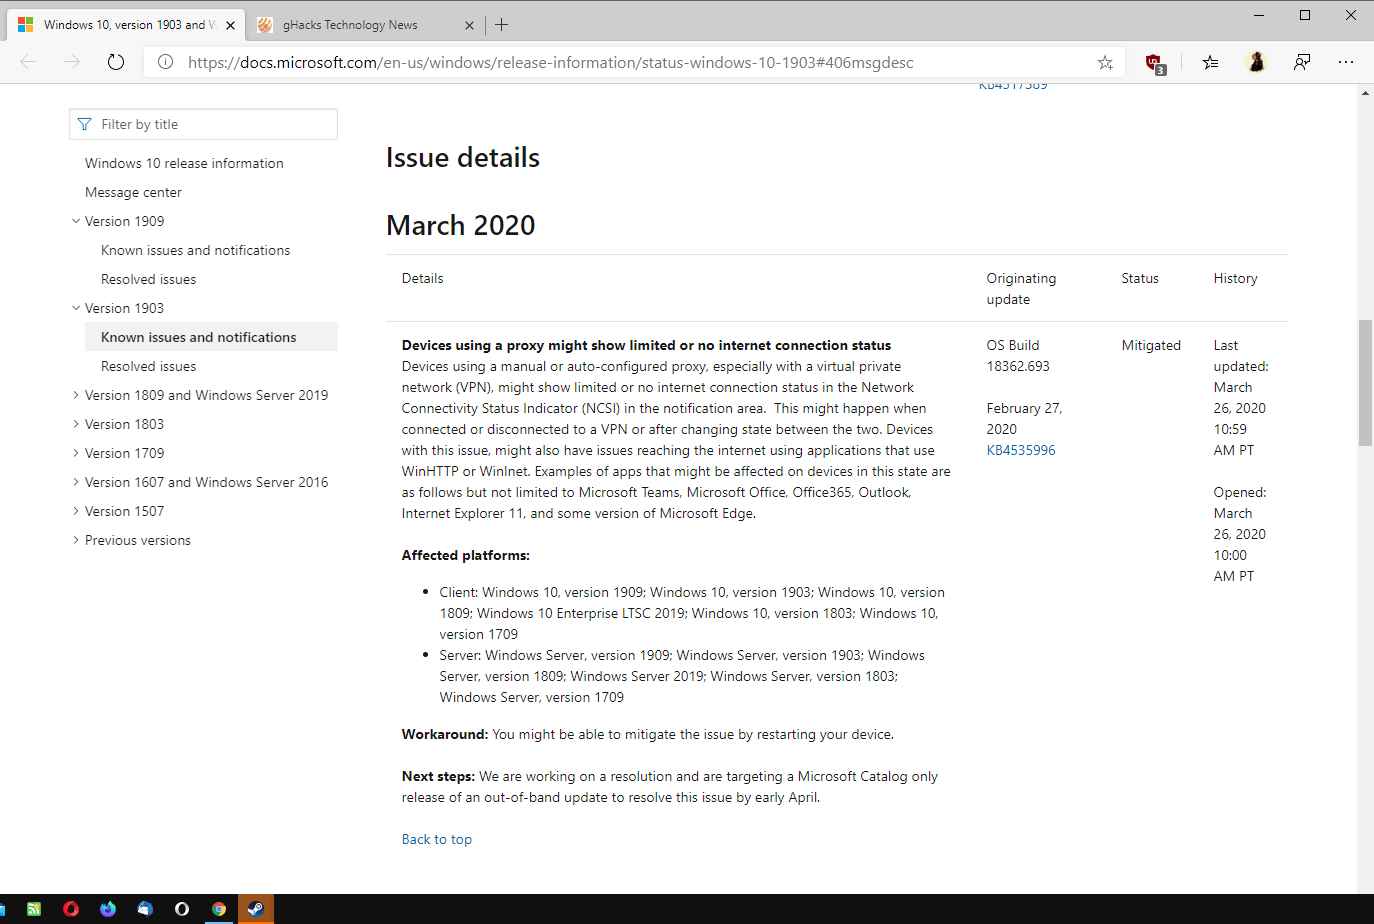 Windows 10 has a new network connectivity issue